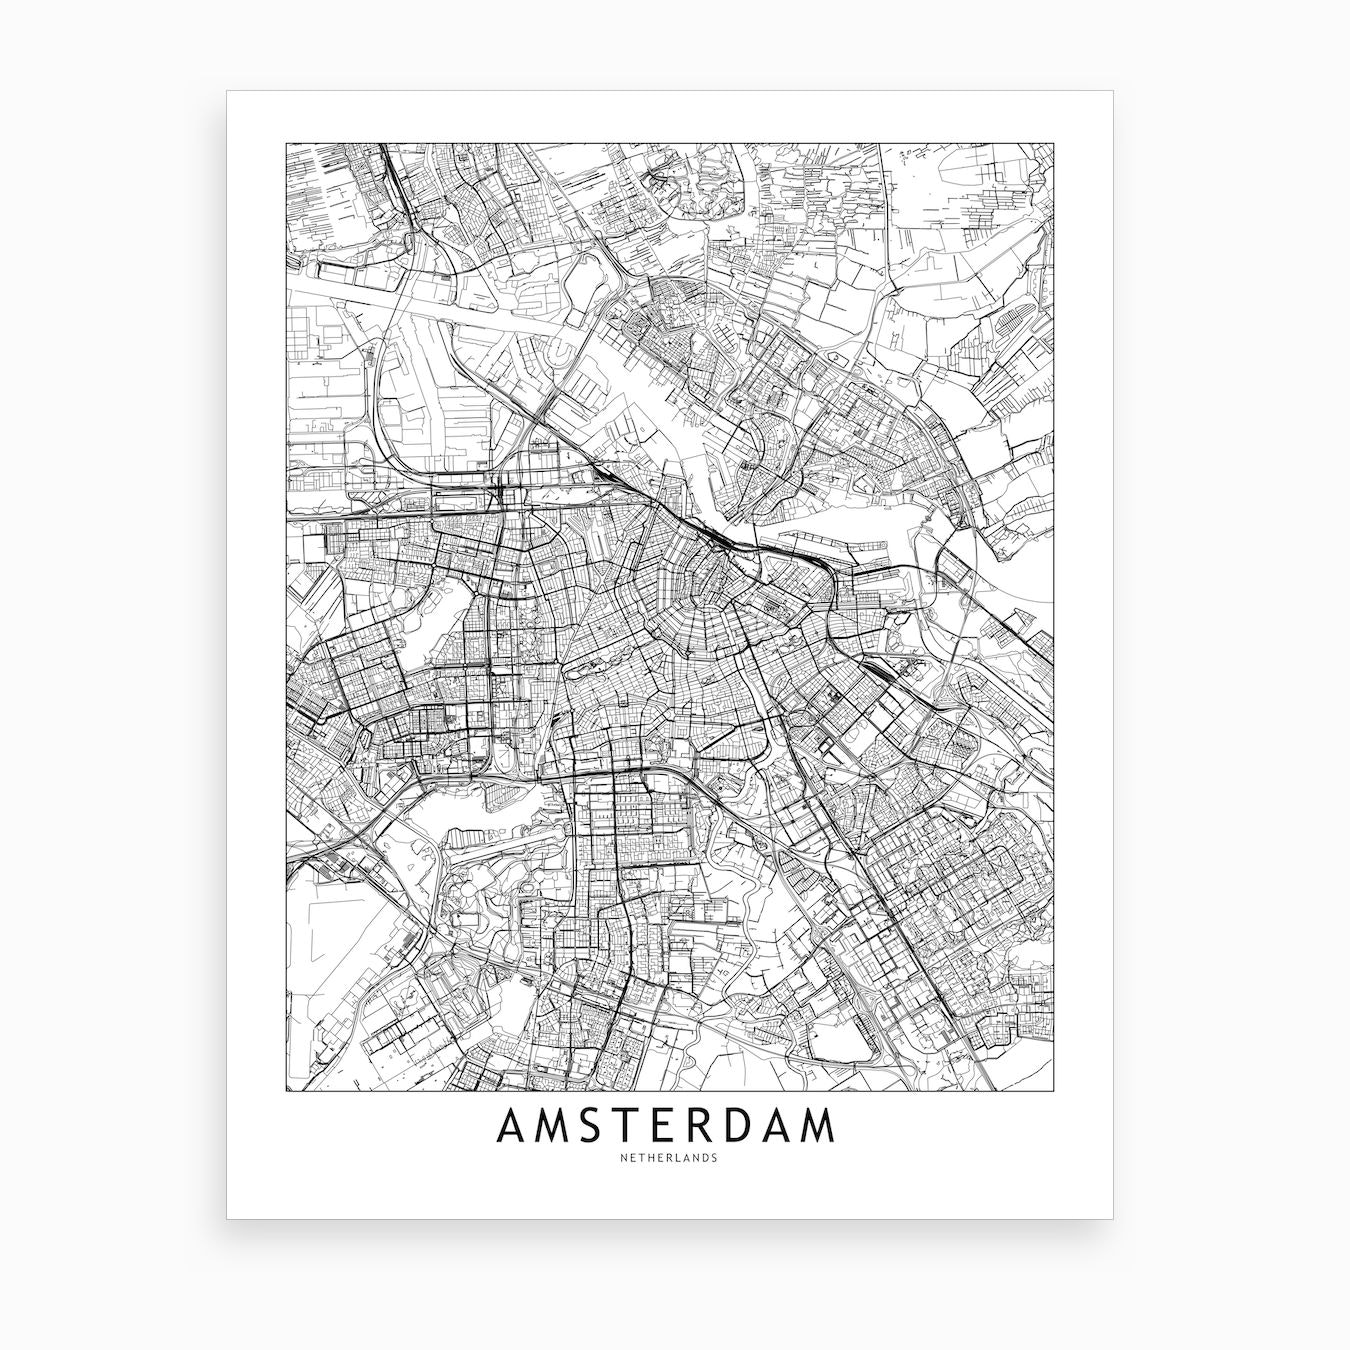 Amsterdam White Map Art Print on copenhagen map, moscow map, europe map, athens map, holland map, denmark map, israel map, world map, kinderdijk map, the netherlands map, edinburgh map, belgium map, leiden map, madrid map, hamburg map, constantinople map, berlin map, rotterdam map, budapest on map, stockholm on map,